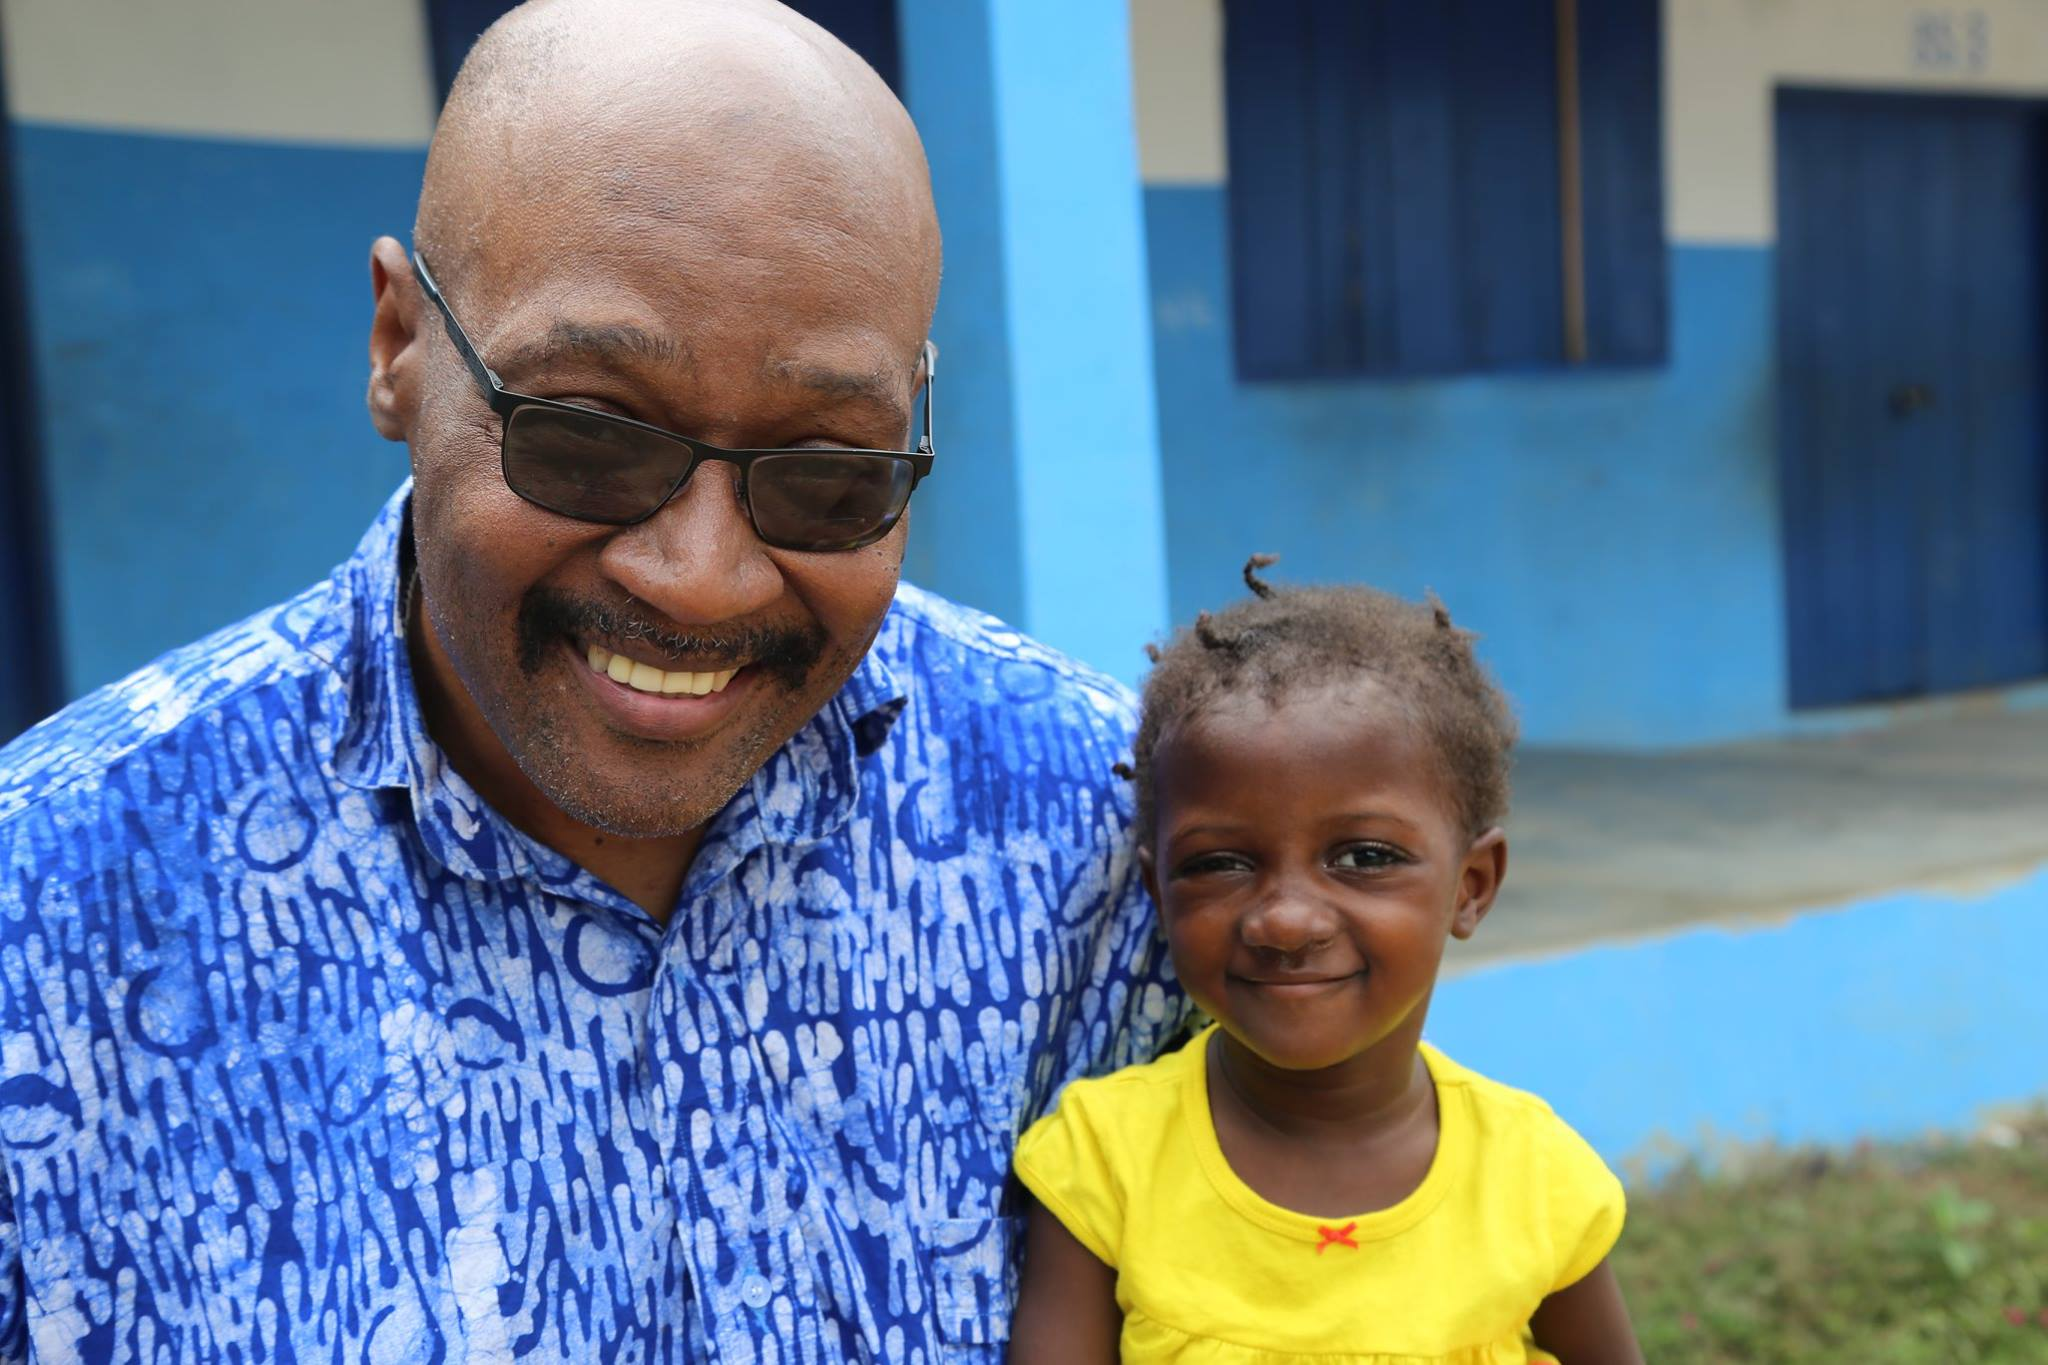 Papa G, a volunteer who returns annually to work with Point Hope Ghana, is very popular with the children and Sangay is no exception.